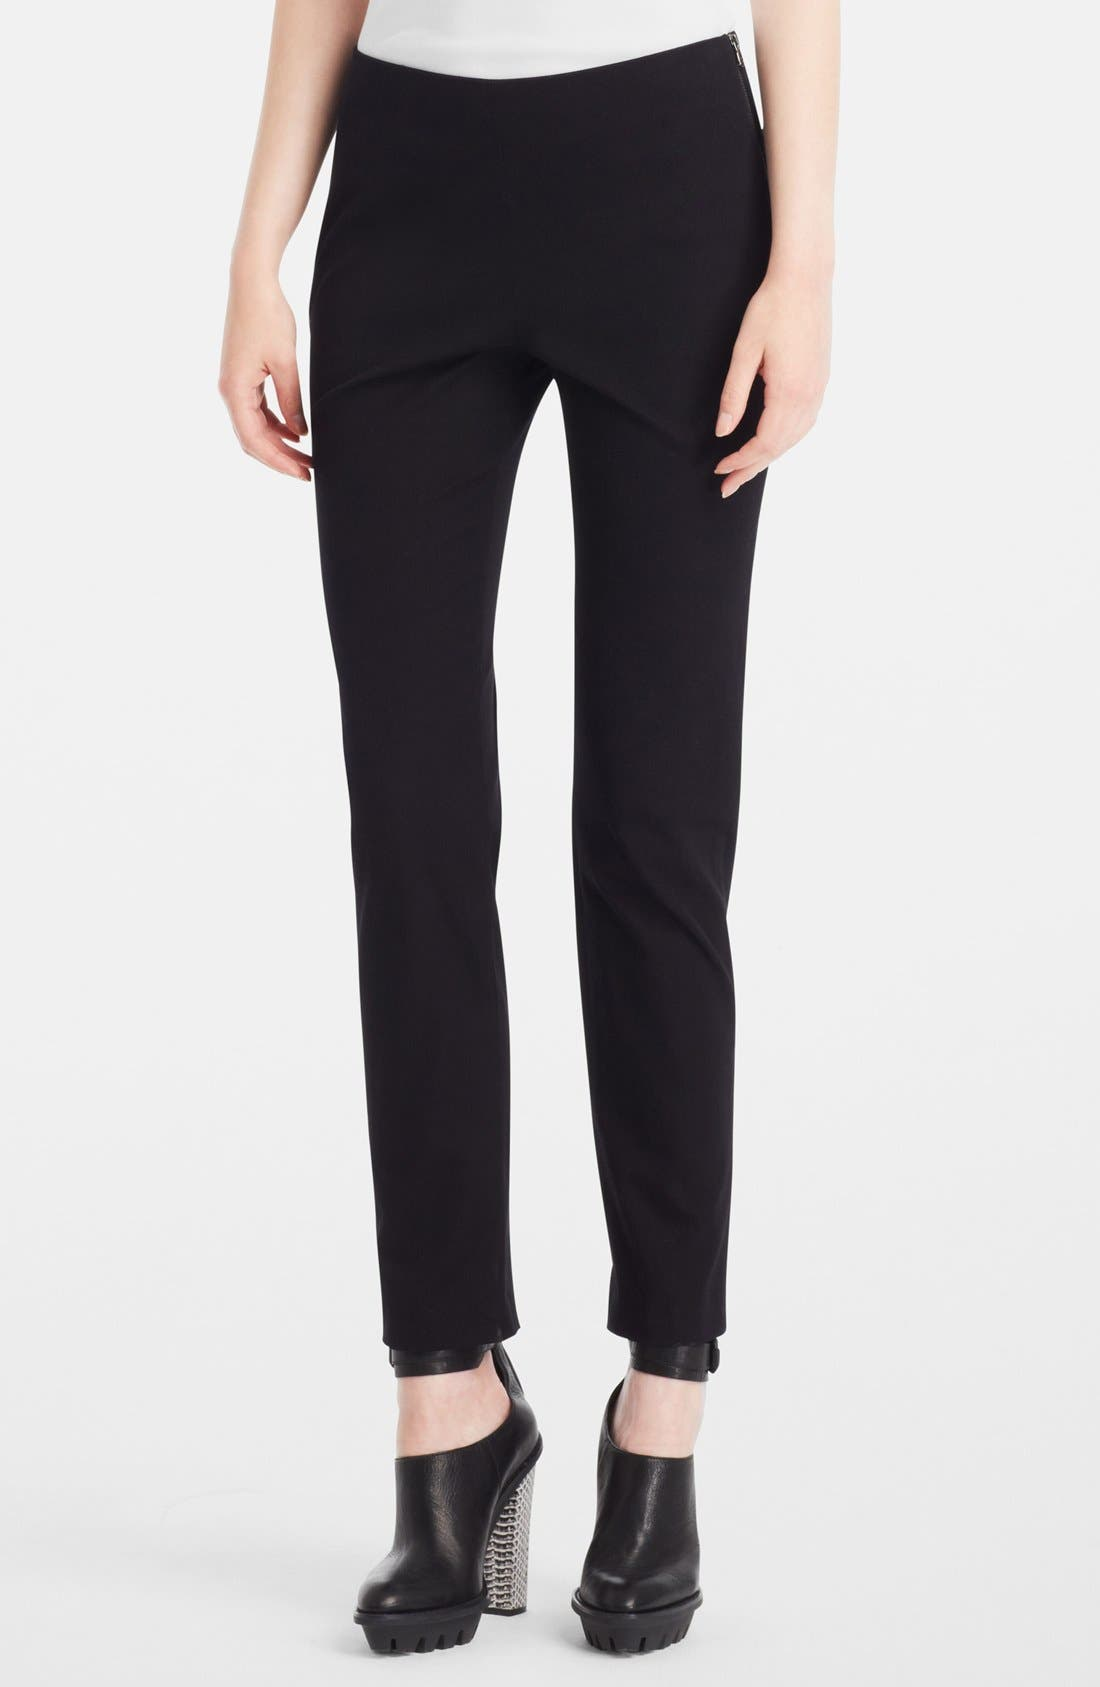 Alternate Image 1 Selected - Kenneth Cole New York 'Emery' Pants